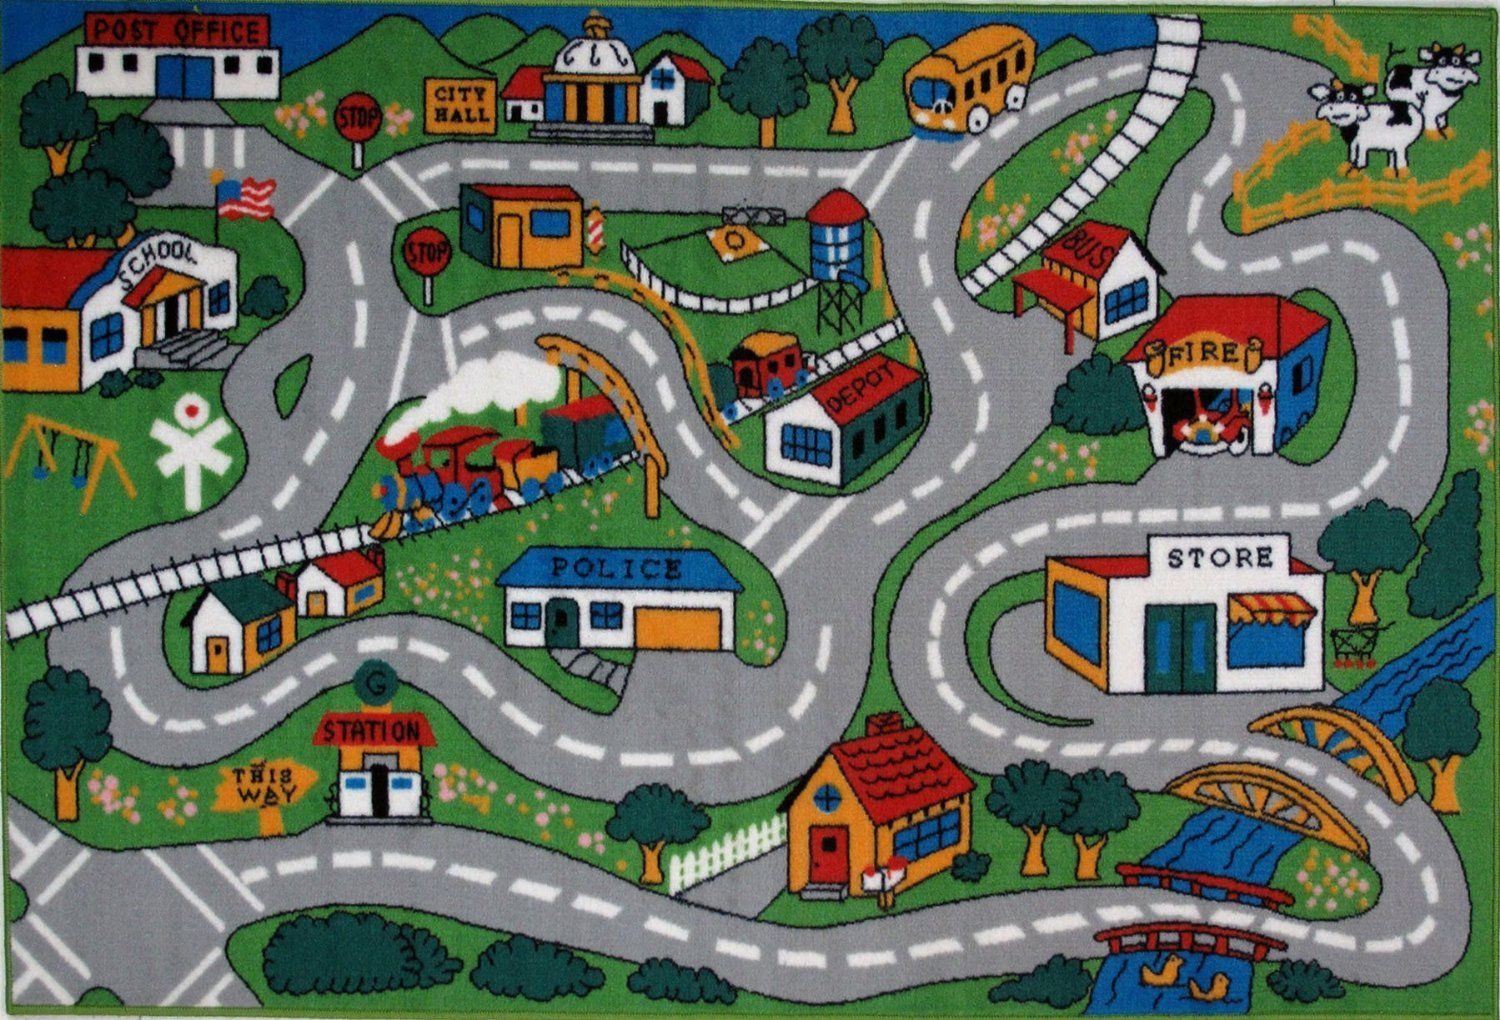 Com Fun Rugs Time Collection Home Kids Room Decorative Floor Area Rug